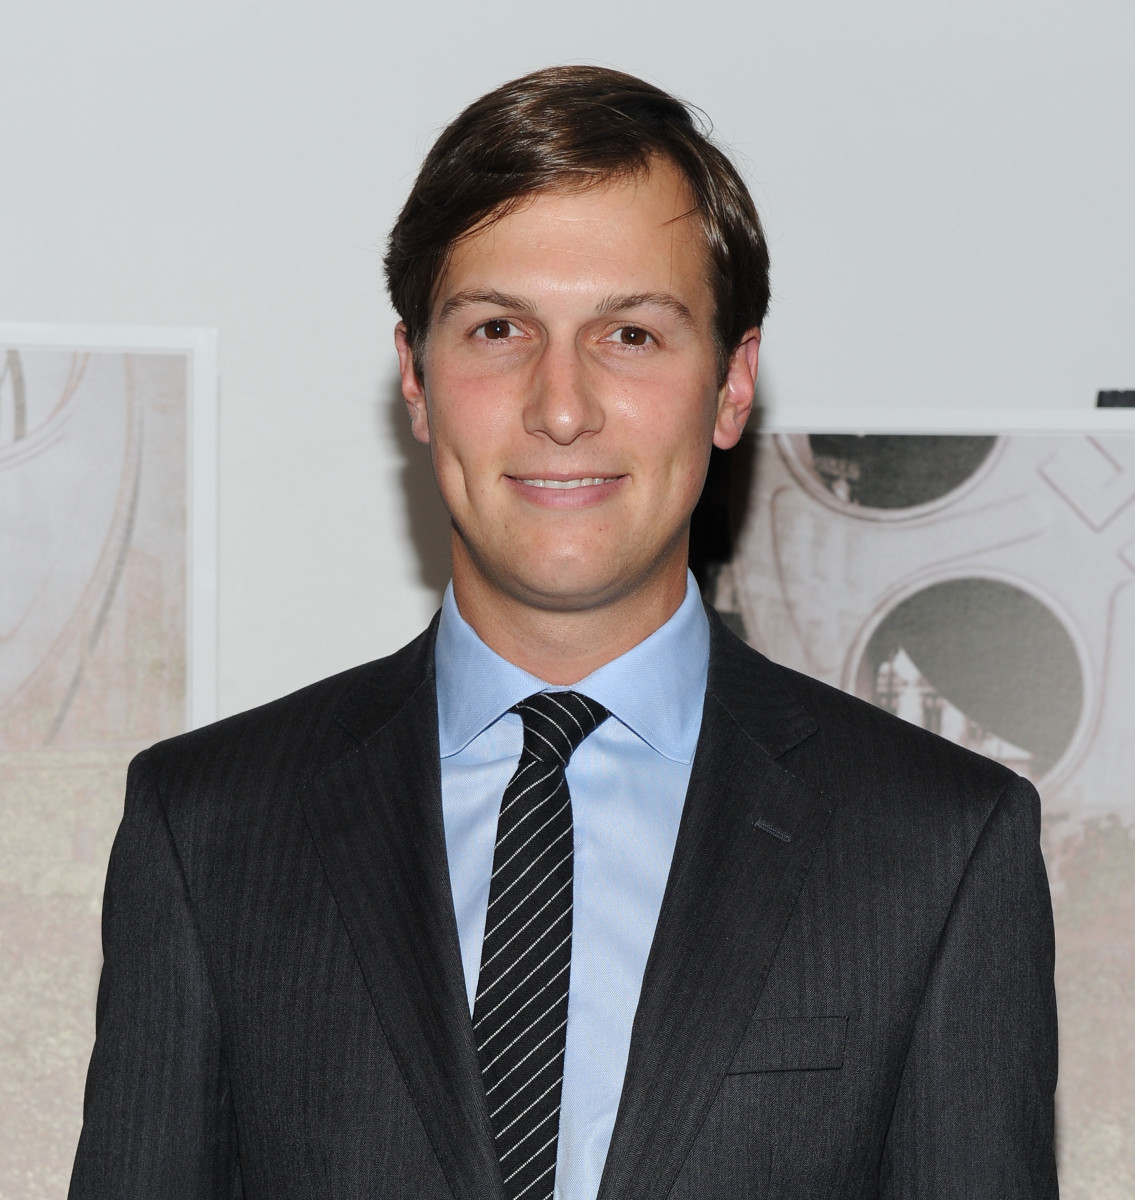 Jared Kushner Photo by Jason Kempin/Getty Images